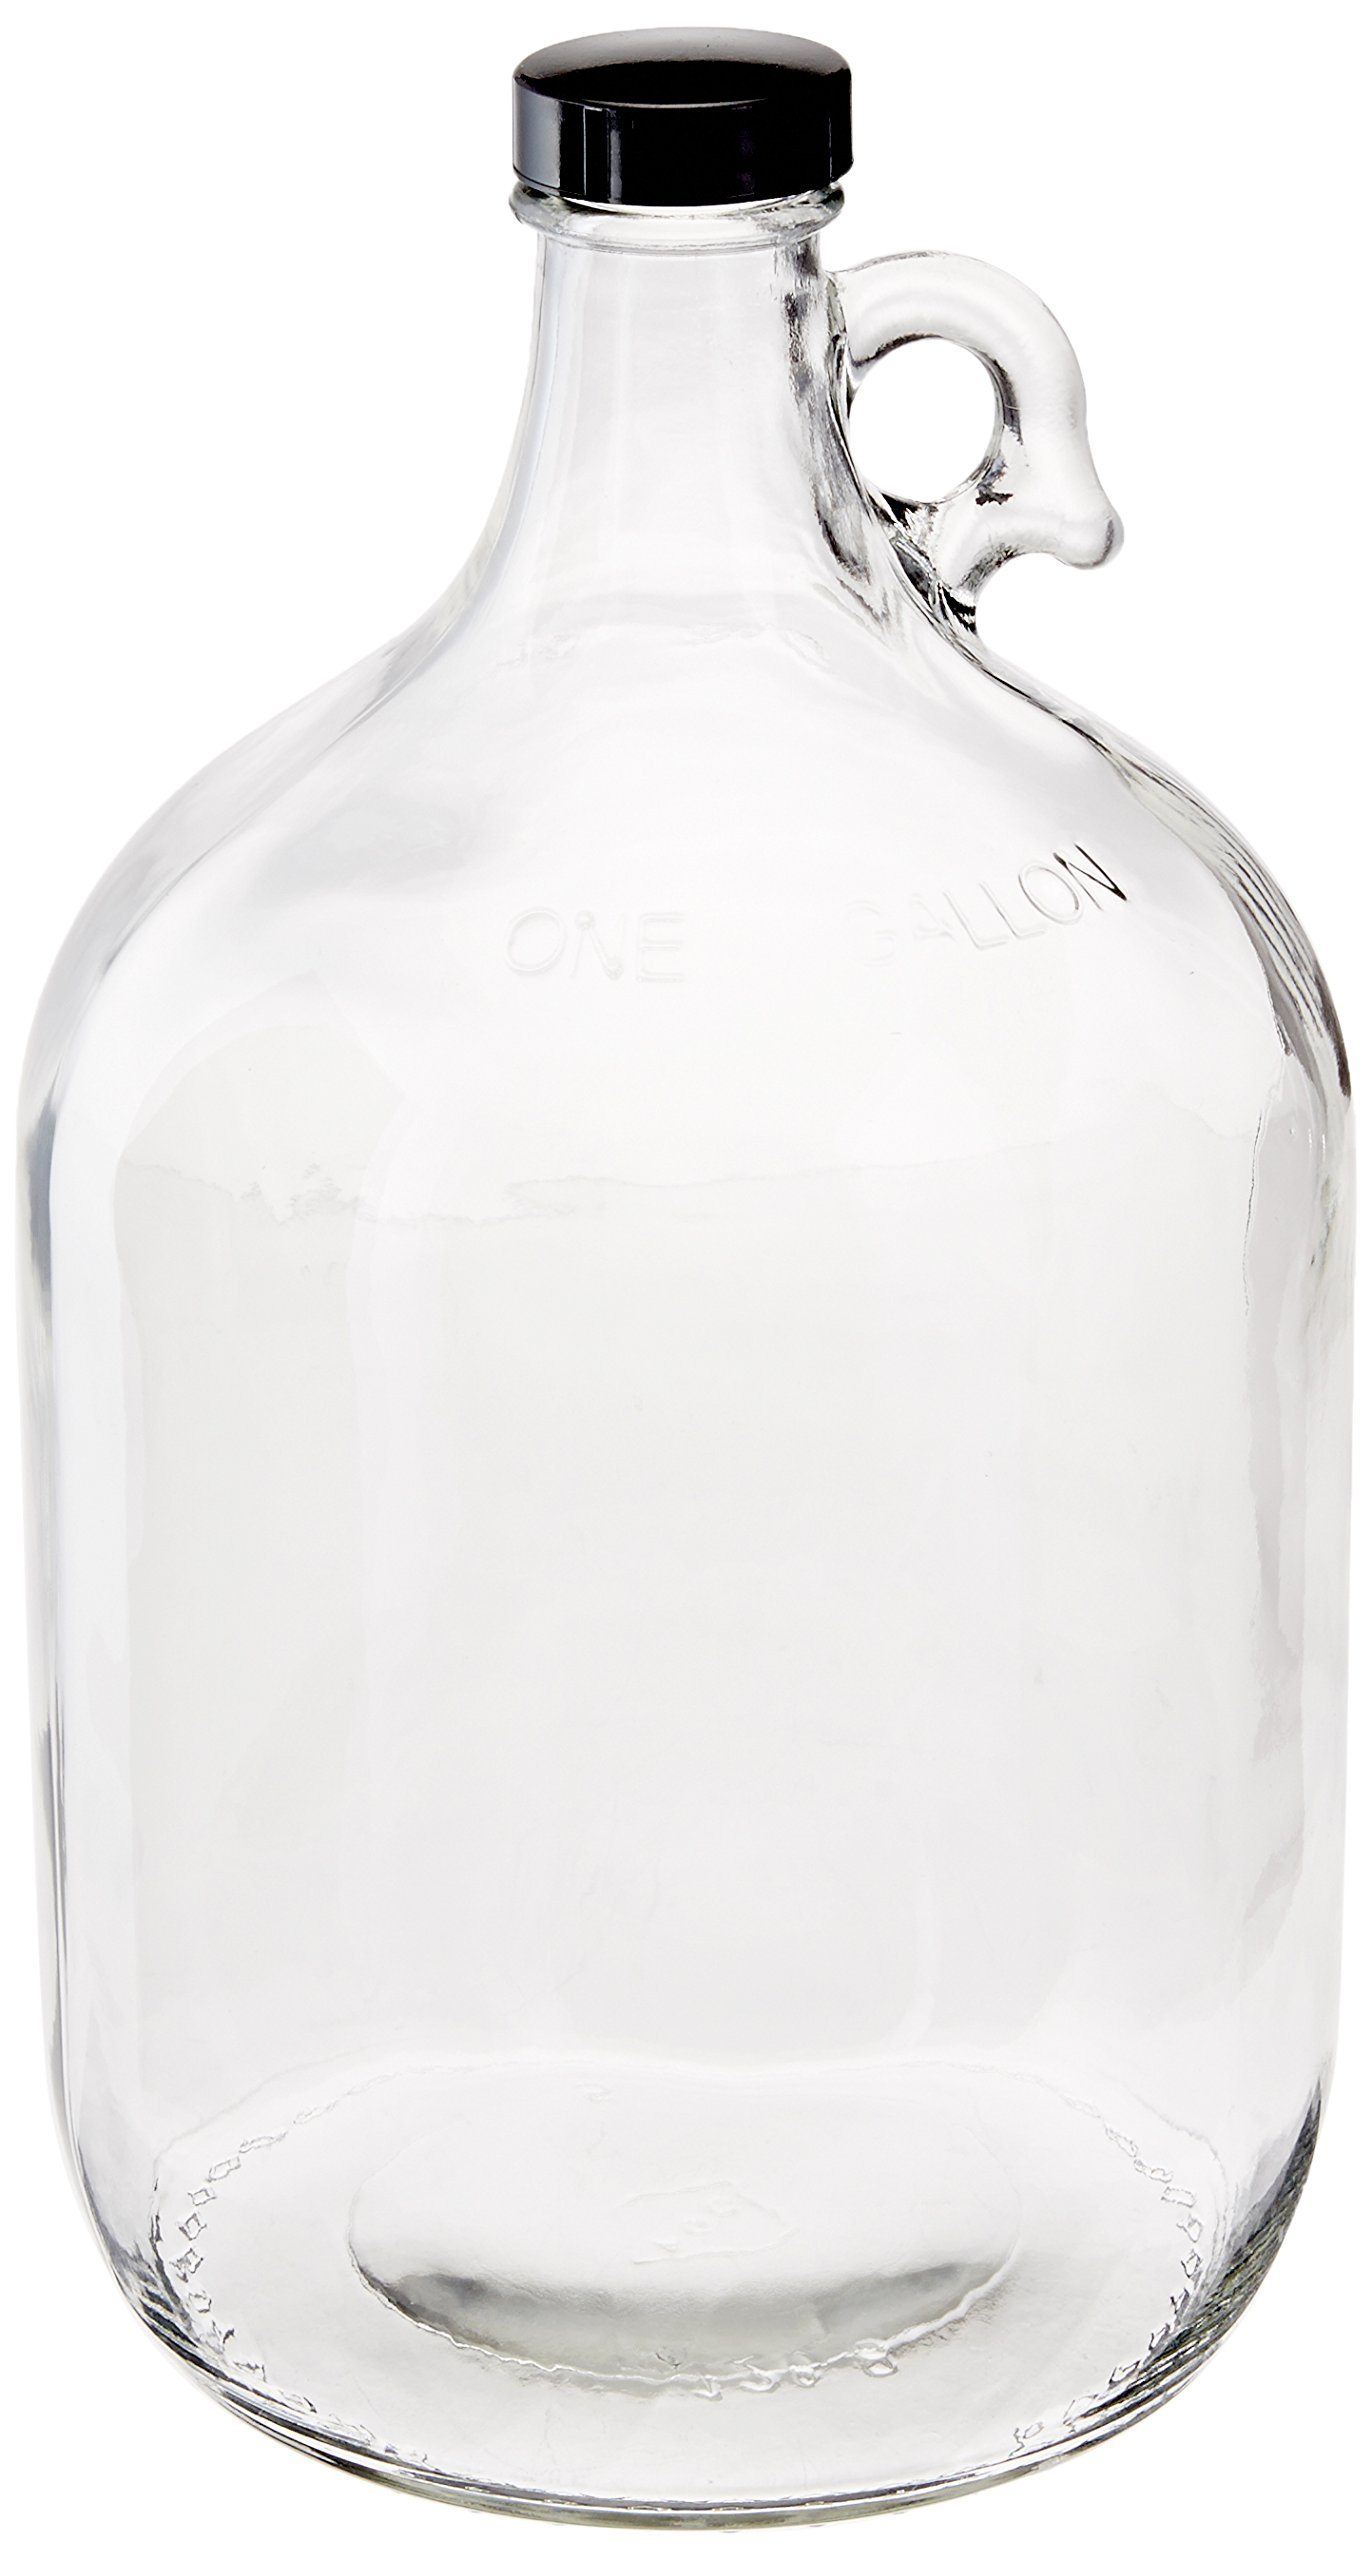 Home Brew Ohio Glass Water Bottle Includes 38 mm Polyseal Cap, 1 gallon Capacity by Home Brew Ohio (Image #1)